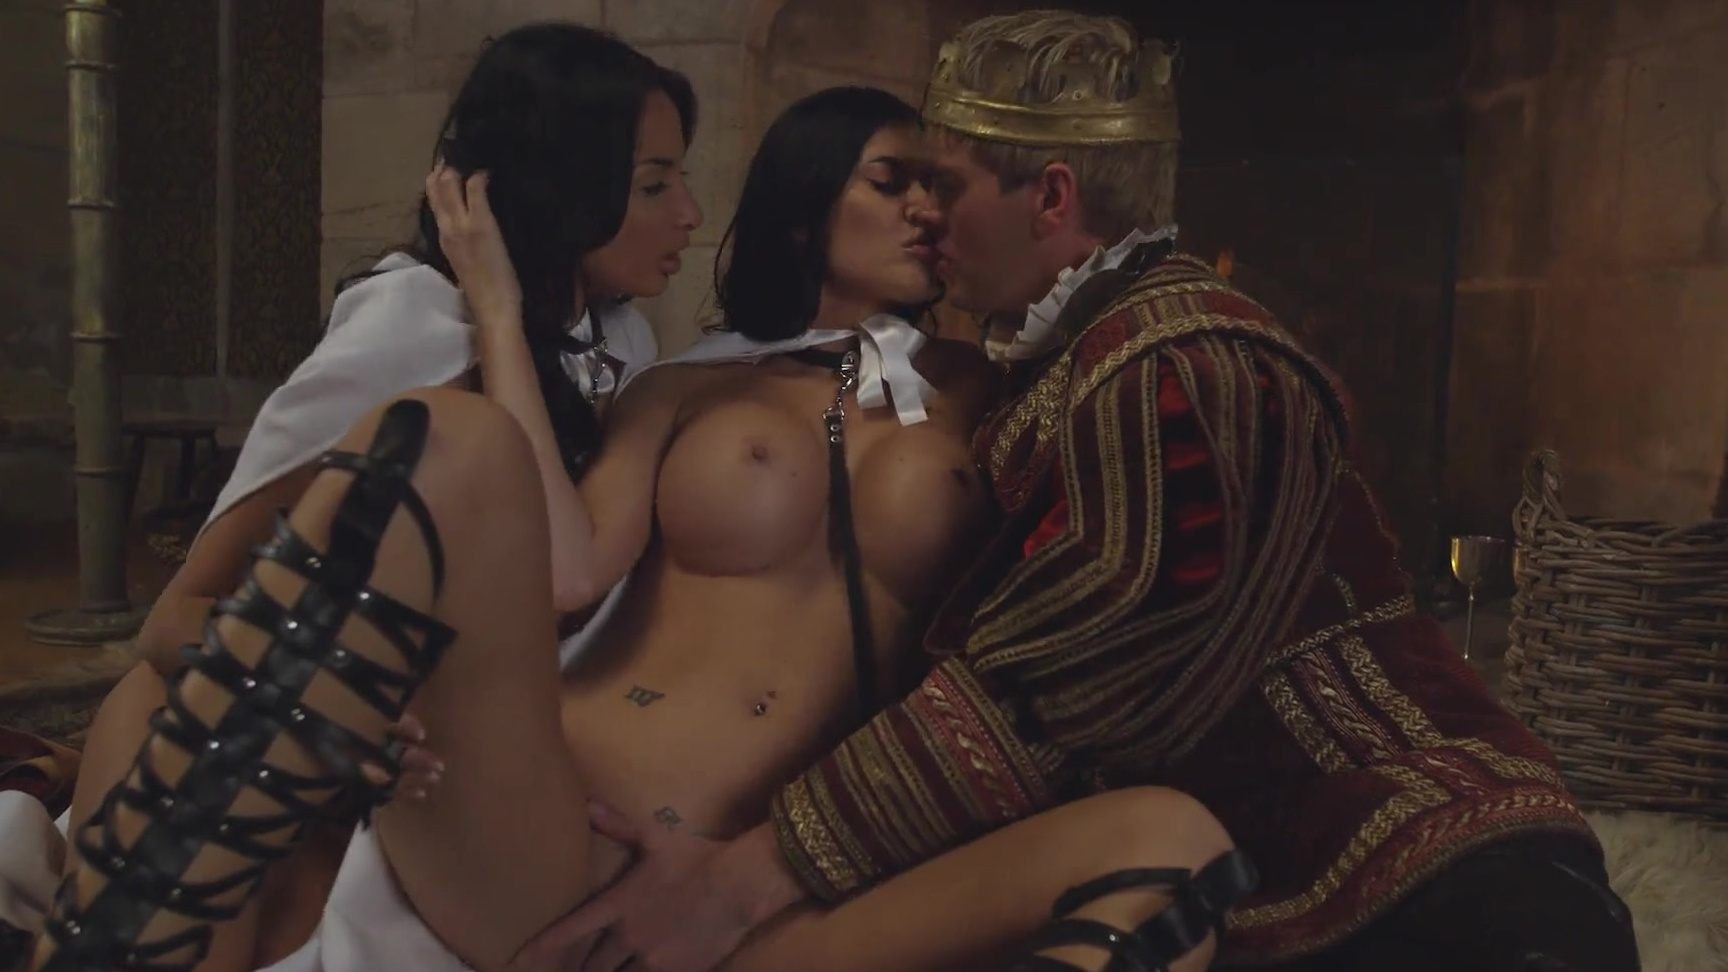 Anissa Kate  Jasmine Jae Are Dominated With Kings Iron -1704